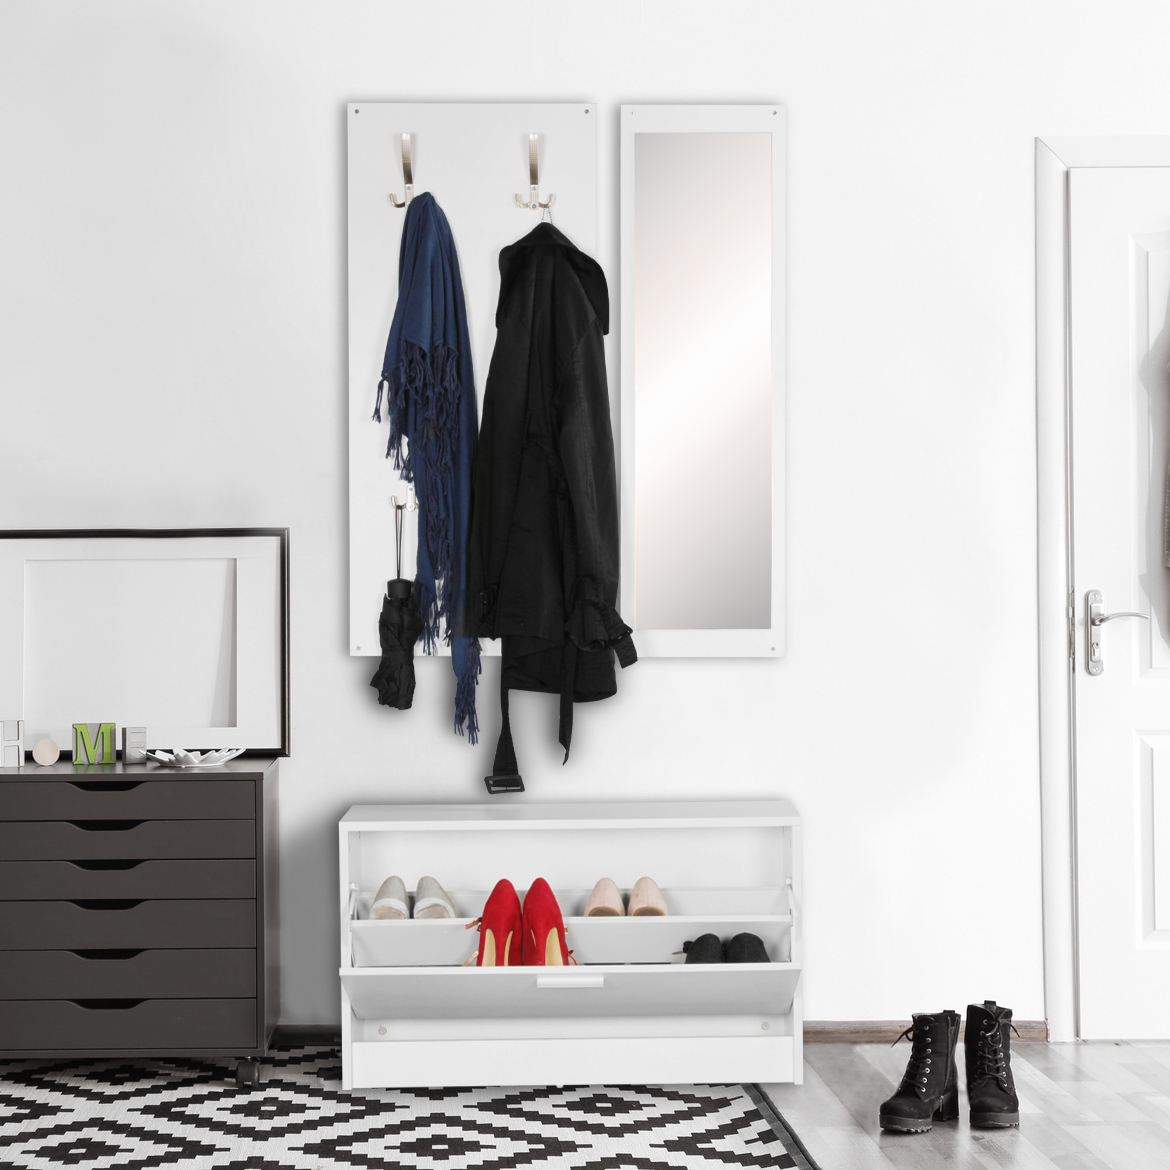 spiegel fr flur garderobe elegant cool garderobe modern sanvirocom flurmbel modern with. Black Bedroom Furniture Sets. Home Design Ideas